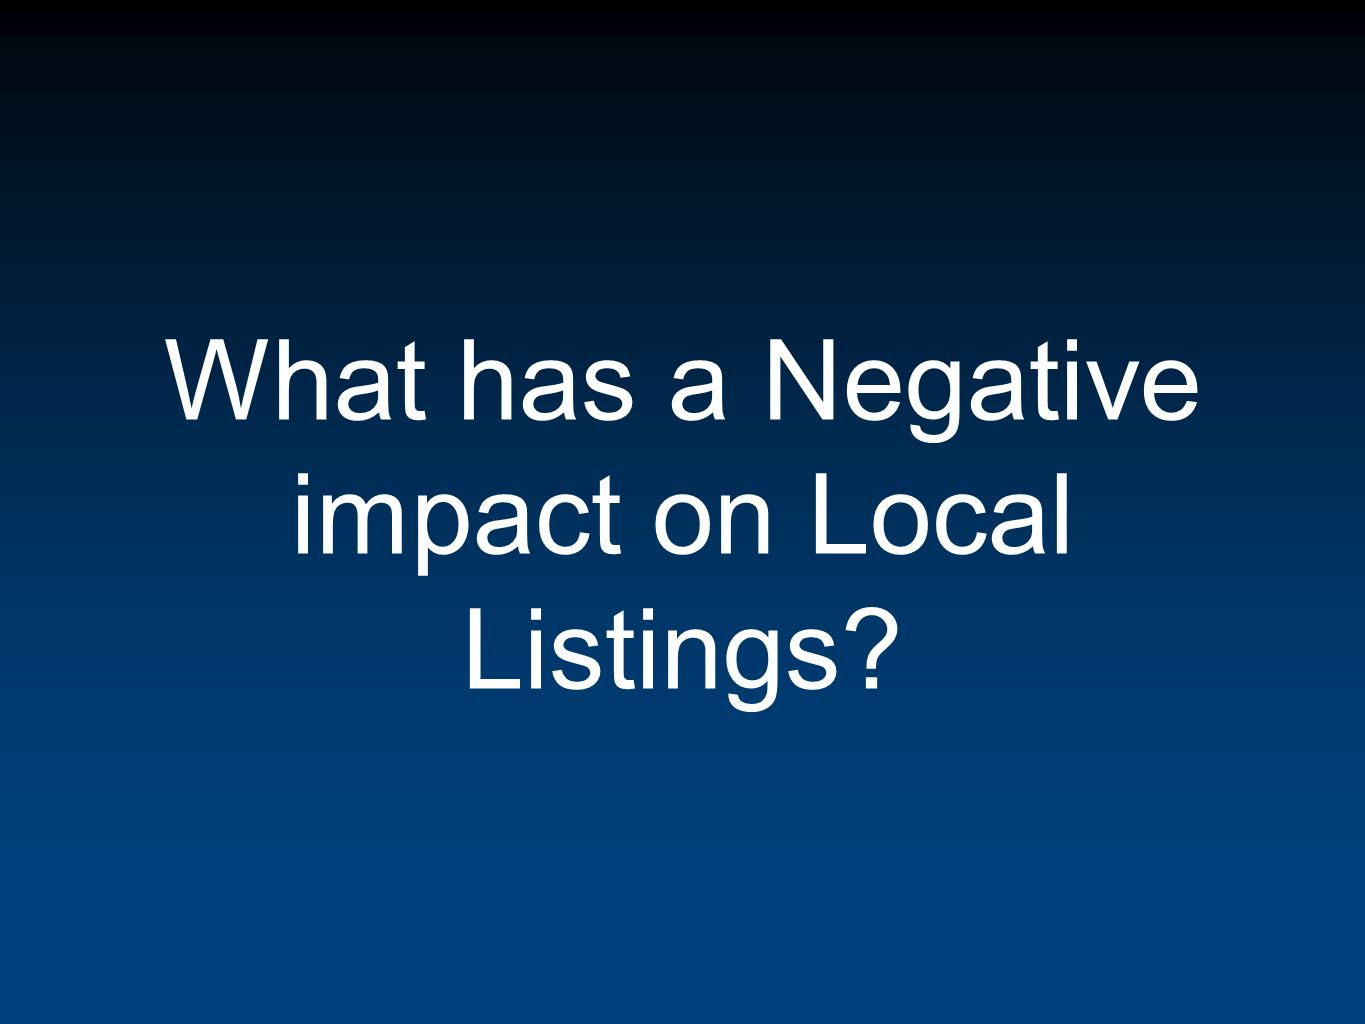 What has a Negative impact on Local Listings?